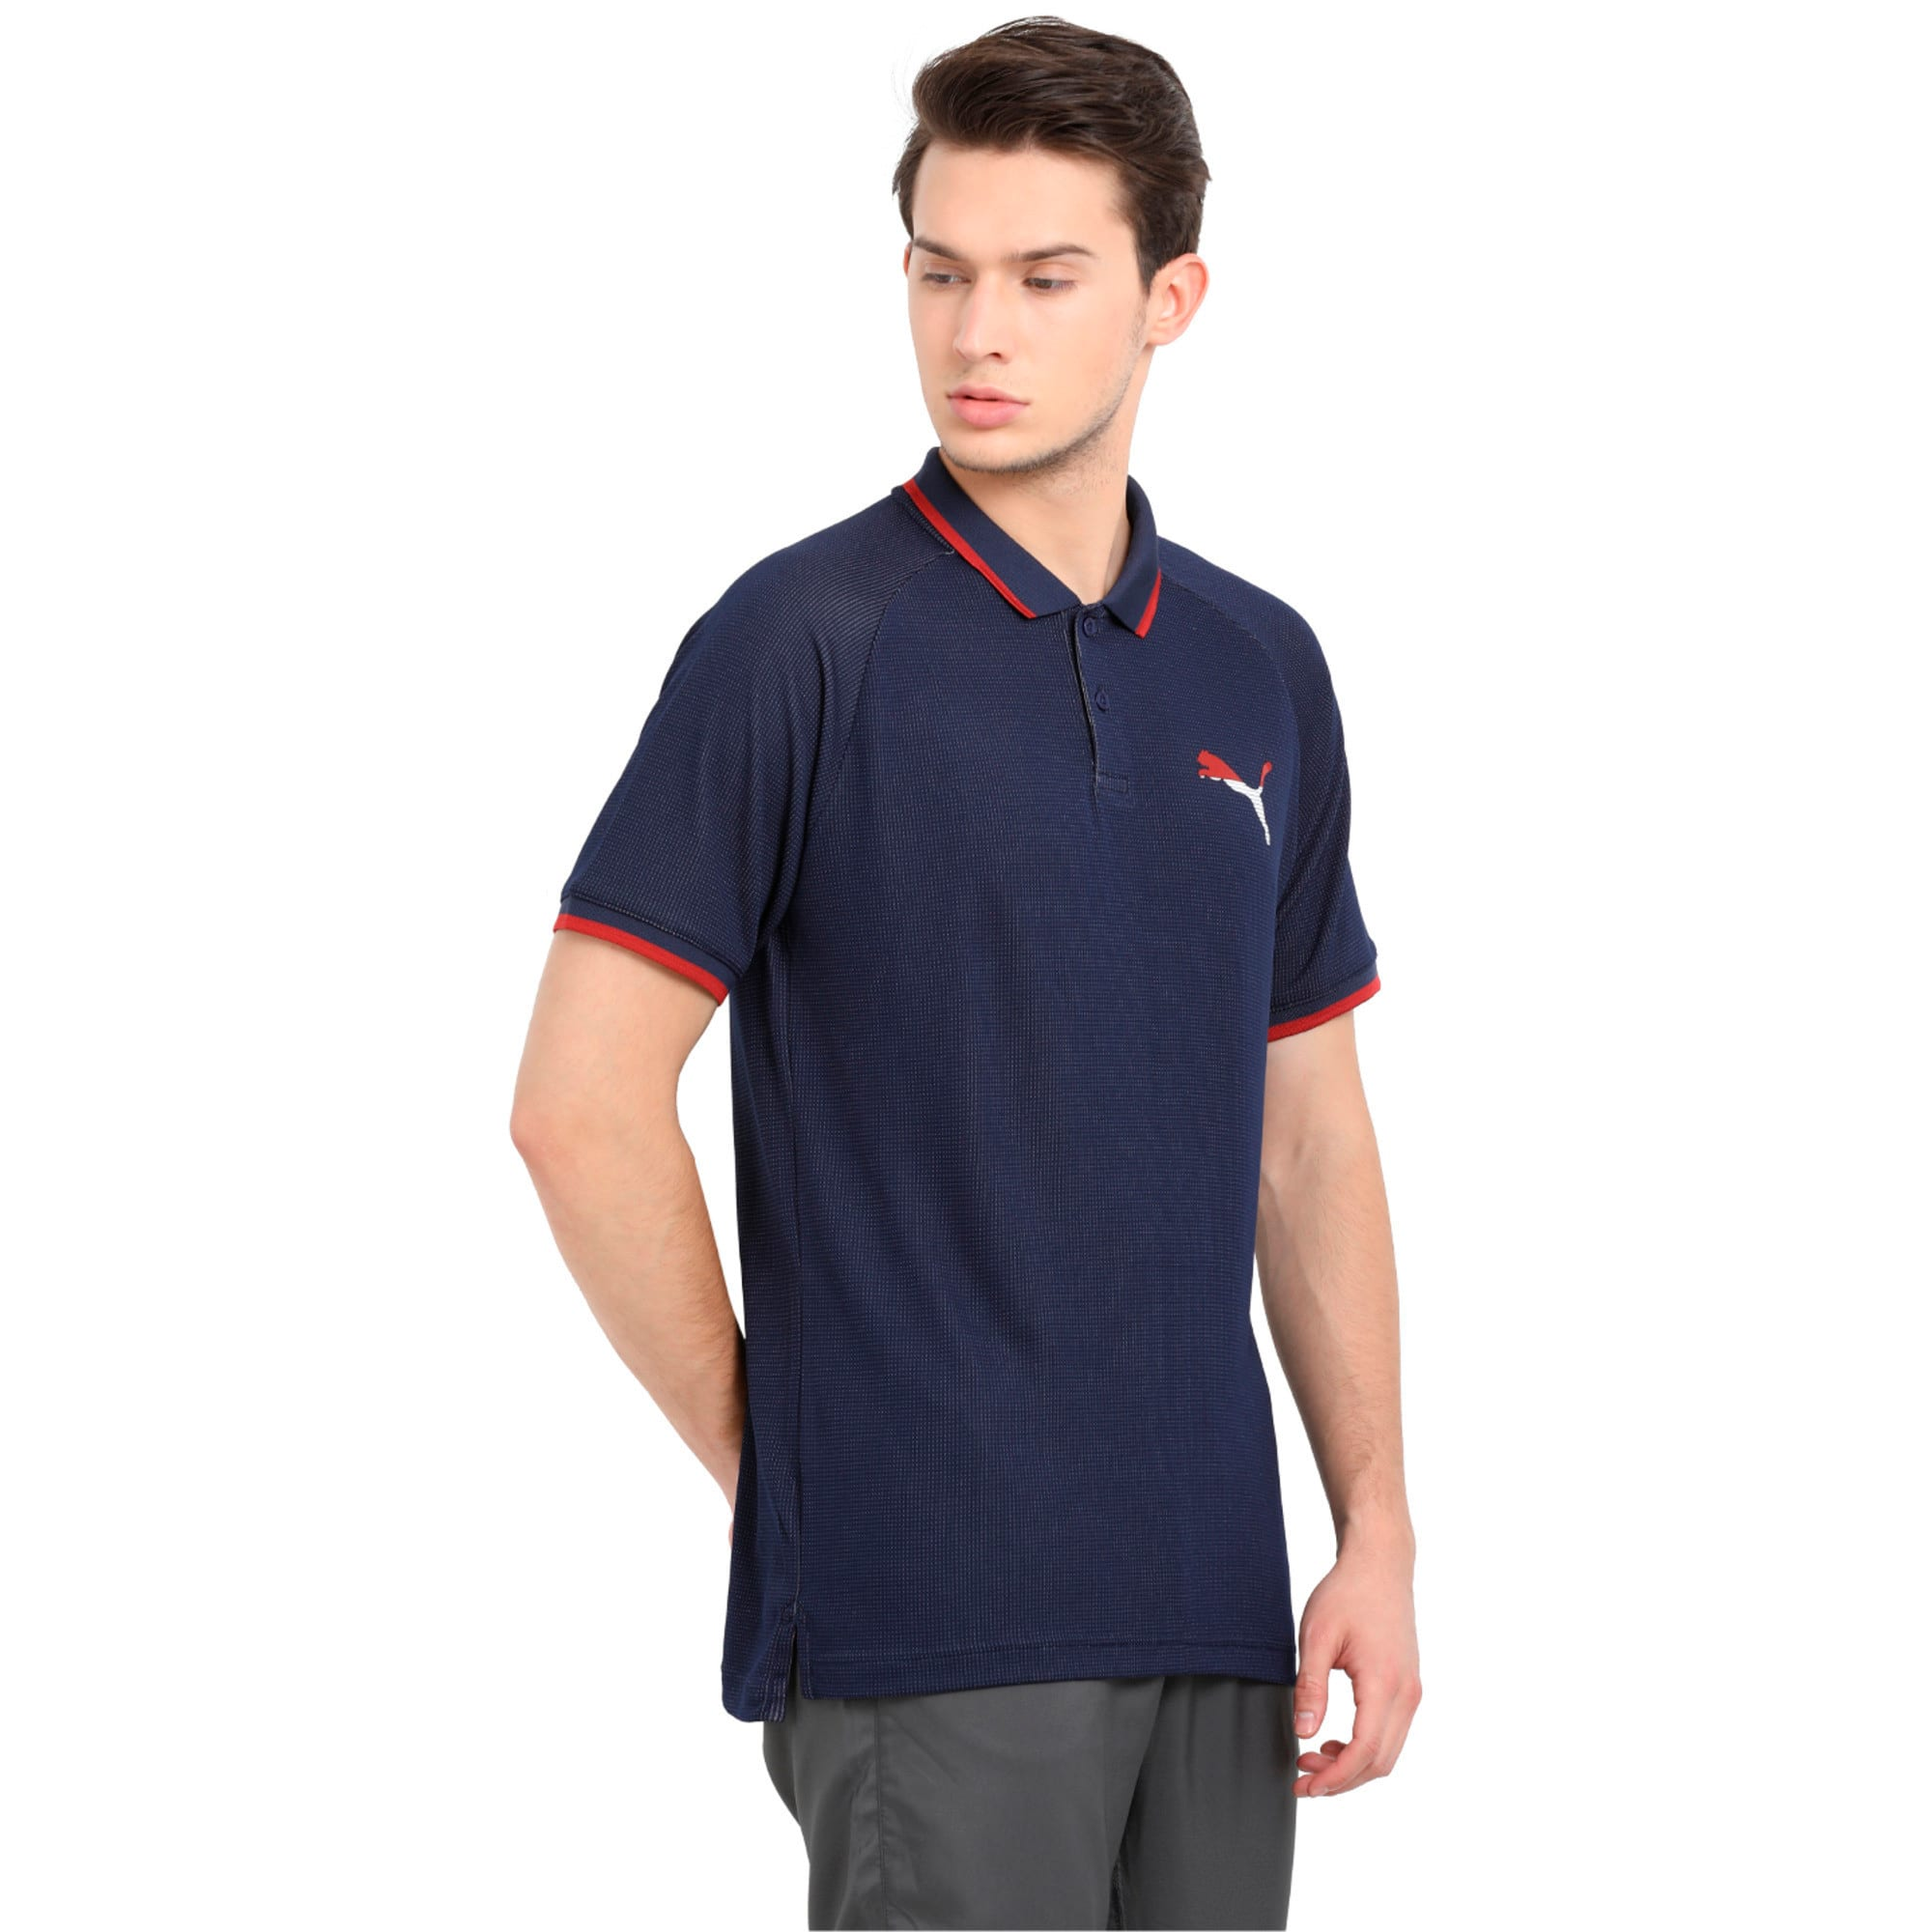 Active Hero Polo, Peacoat, large-IND